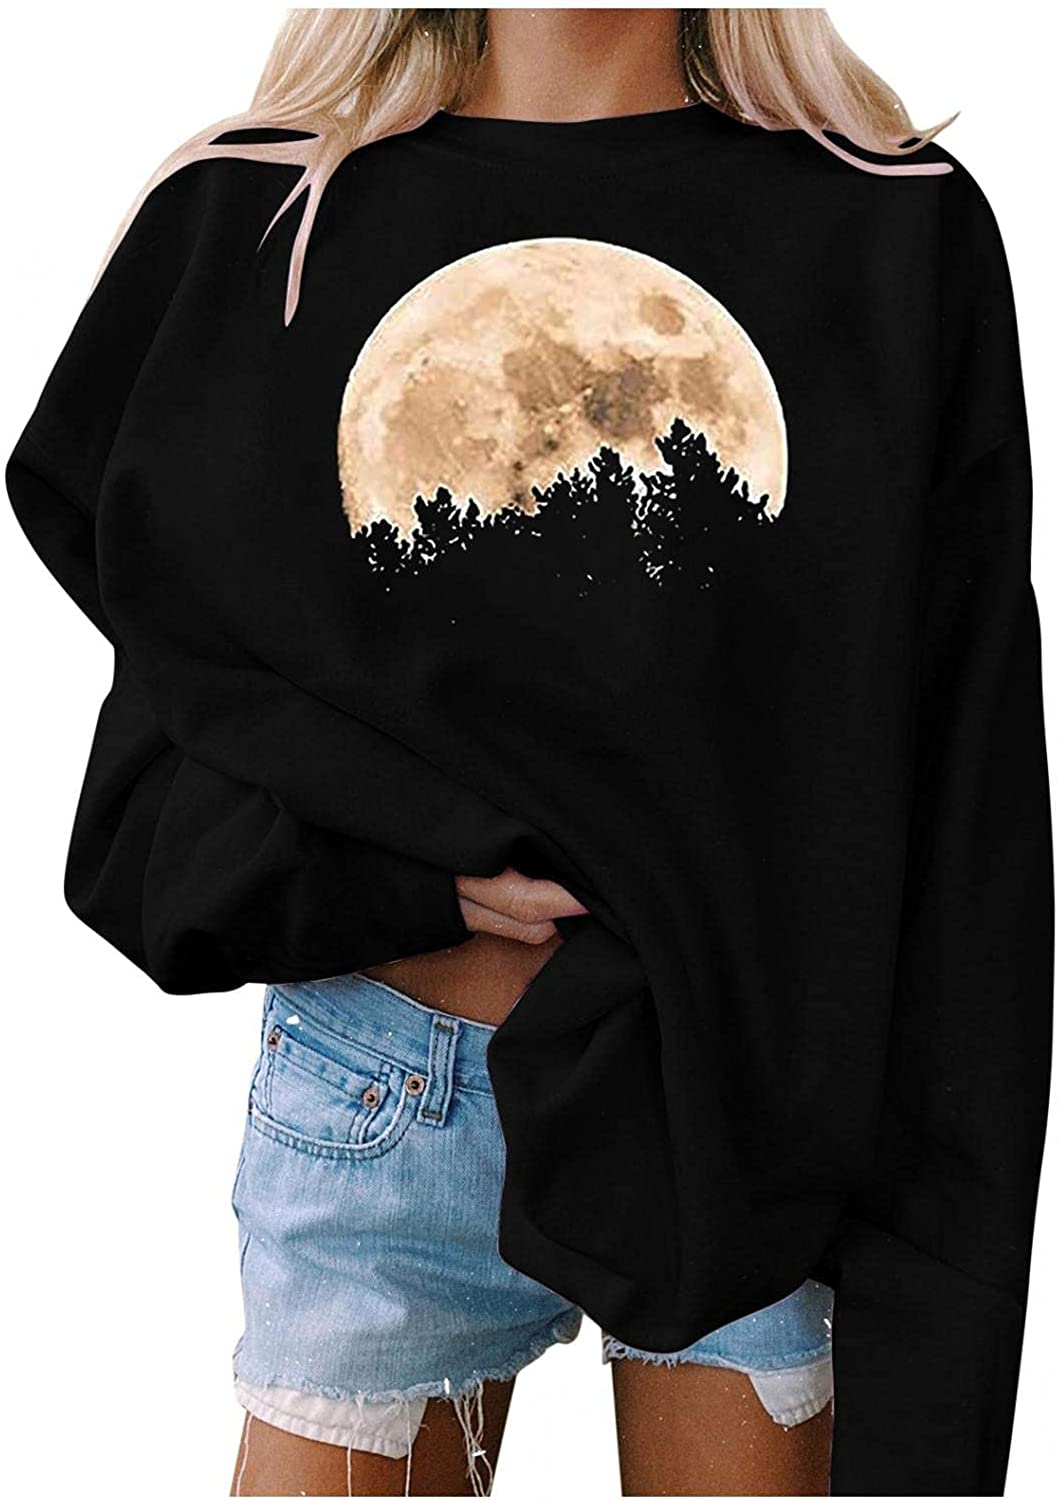 FABIURT Sweatshirt for Women,Womens Tops and Blouses Casual Moon Tees Long Sleeve Loose Fit Tshirts Workout Exercise